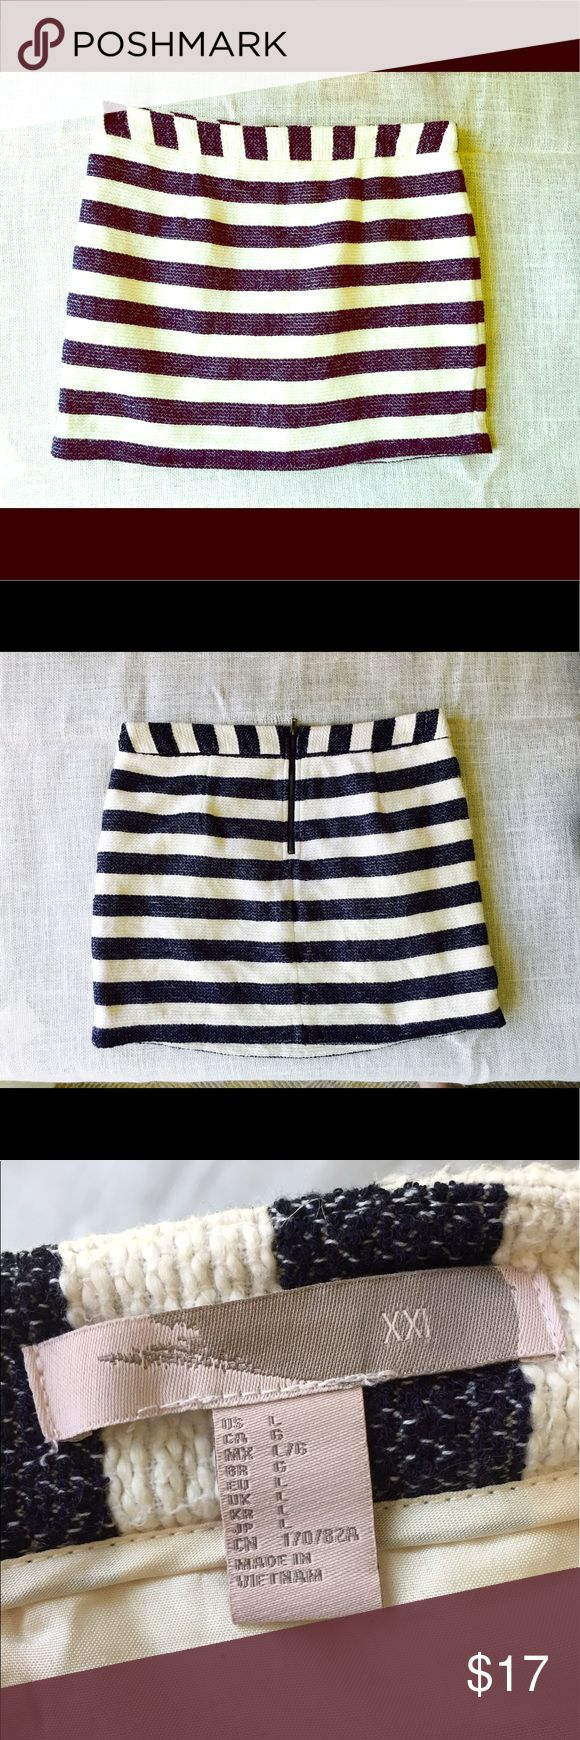 Woven Striped Skirt This woven skirt has a tan and navy stripe to it and it almost looks chambray. Gorg! Forever 21 Skirts Mini